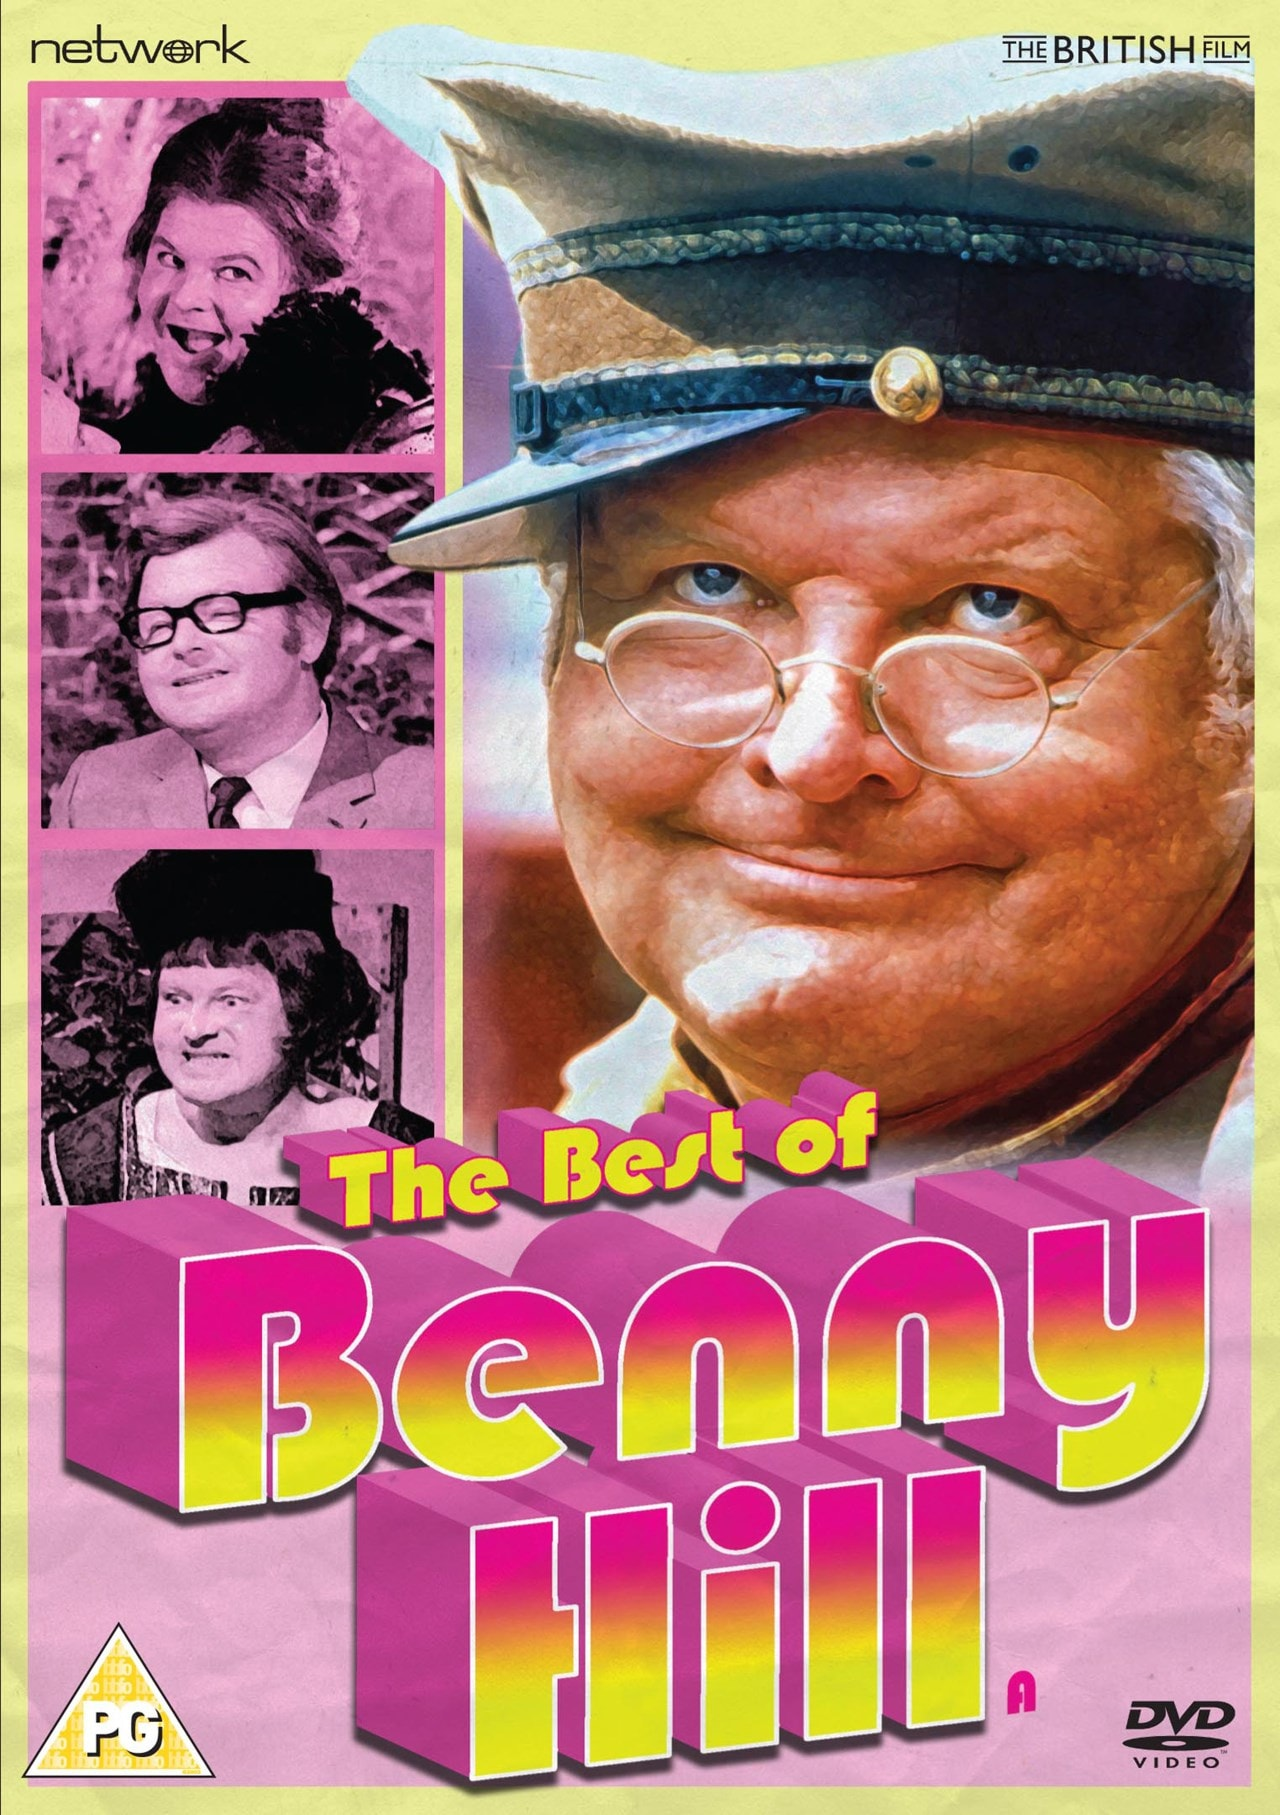 Benny Hill: The Best of Benny Hill - 1